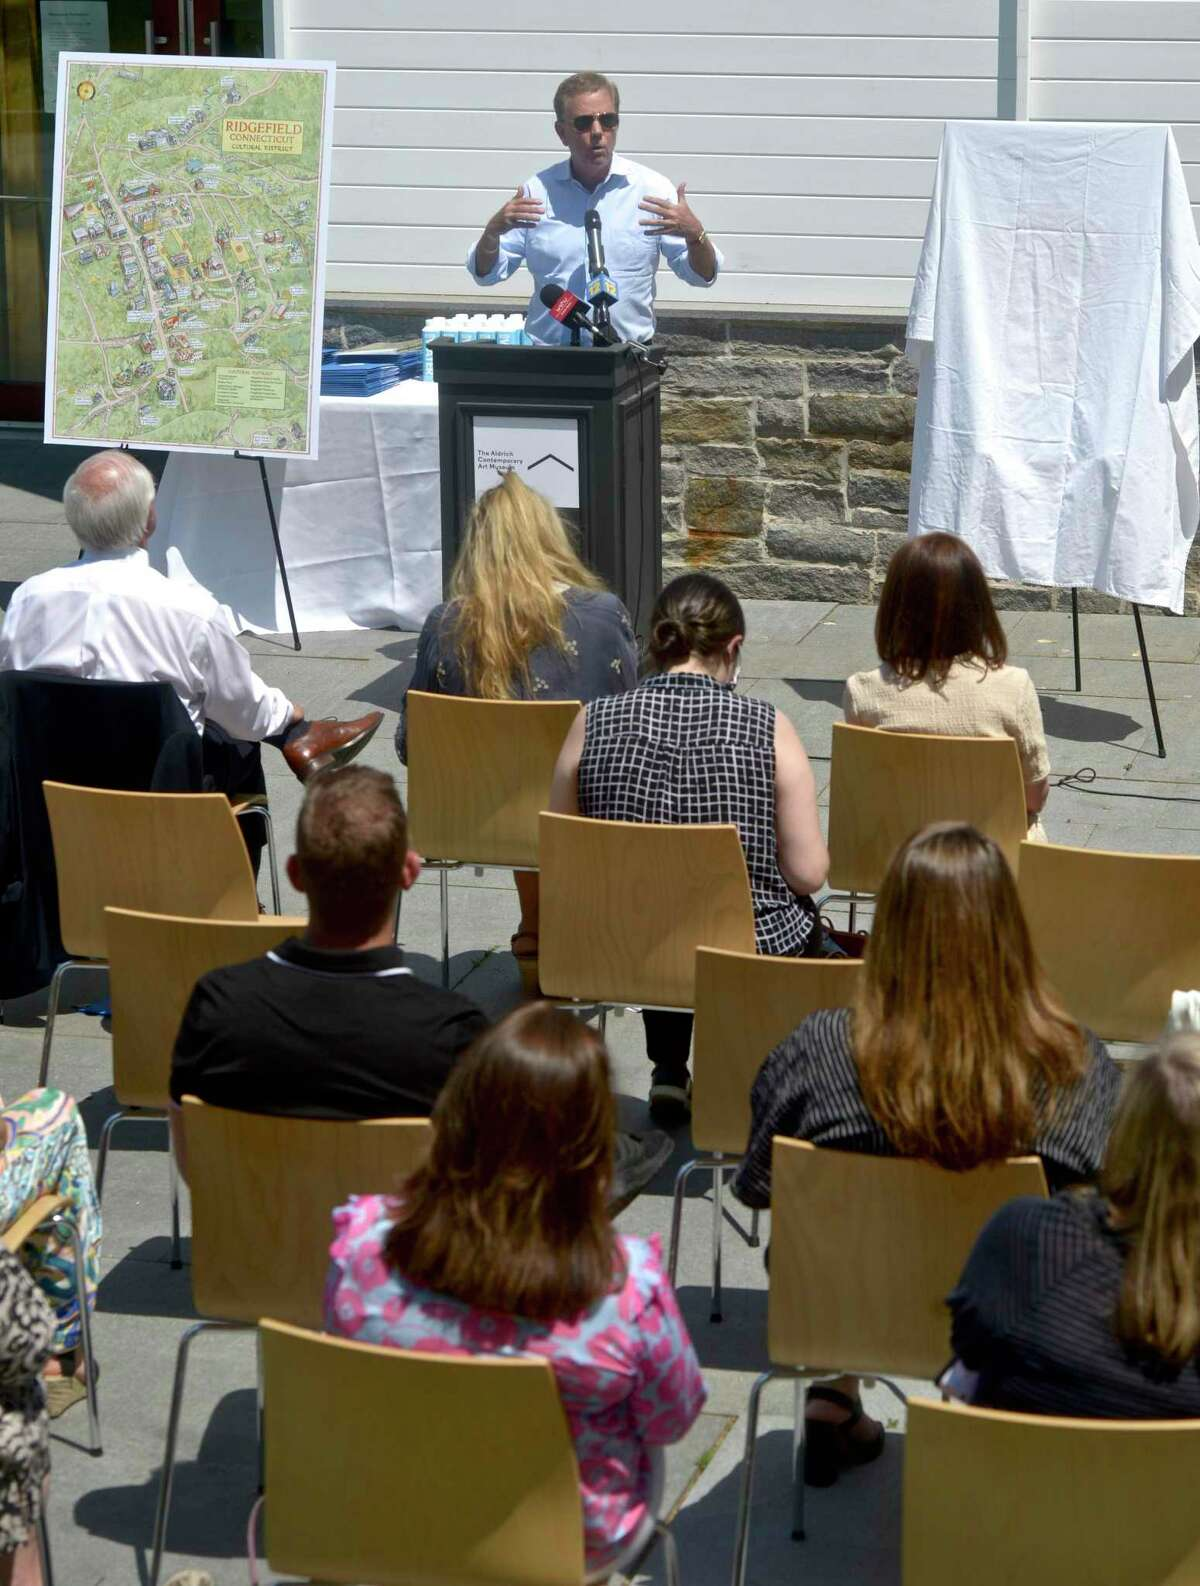 Governor Ned Lamont visited the Aldrich Contemporary Art Museum, in Ridgefield, to announce that the town has been granted the state's first Cultural District. Friday afternoon, May 21, 2021, in Ridgefield, Conn.